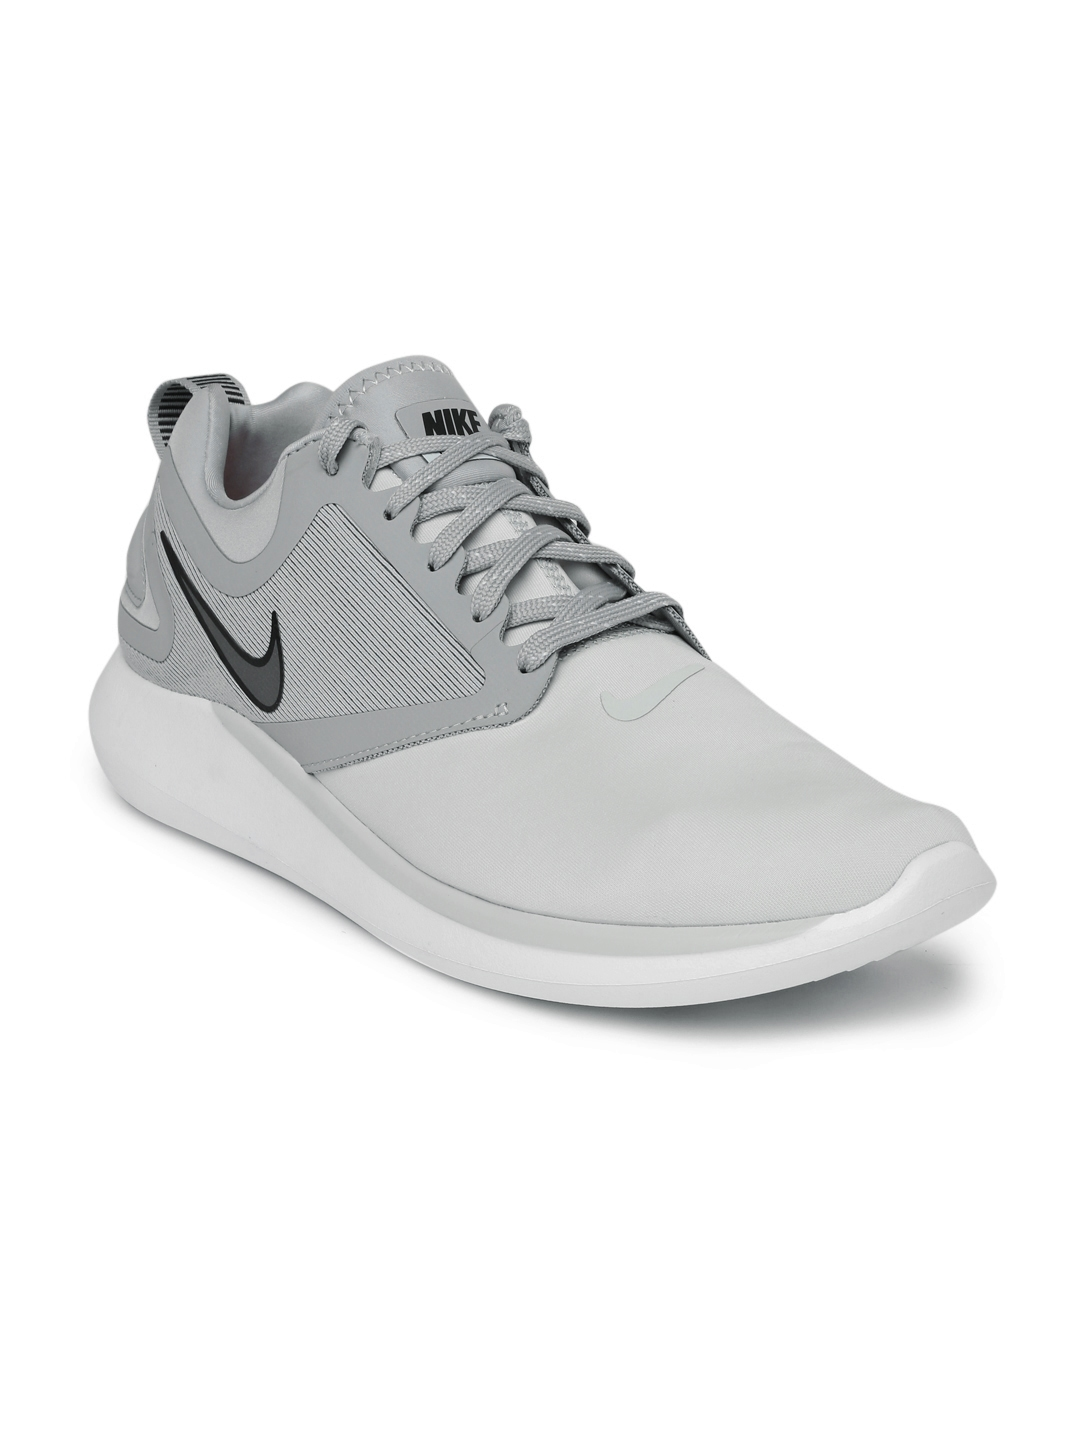 9c0e46d222d 11503483819165-Nike-Men-Grey-Running-Shoes-8271503483819049-1.jpg